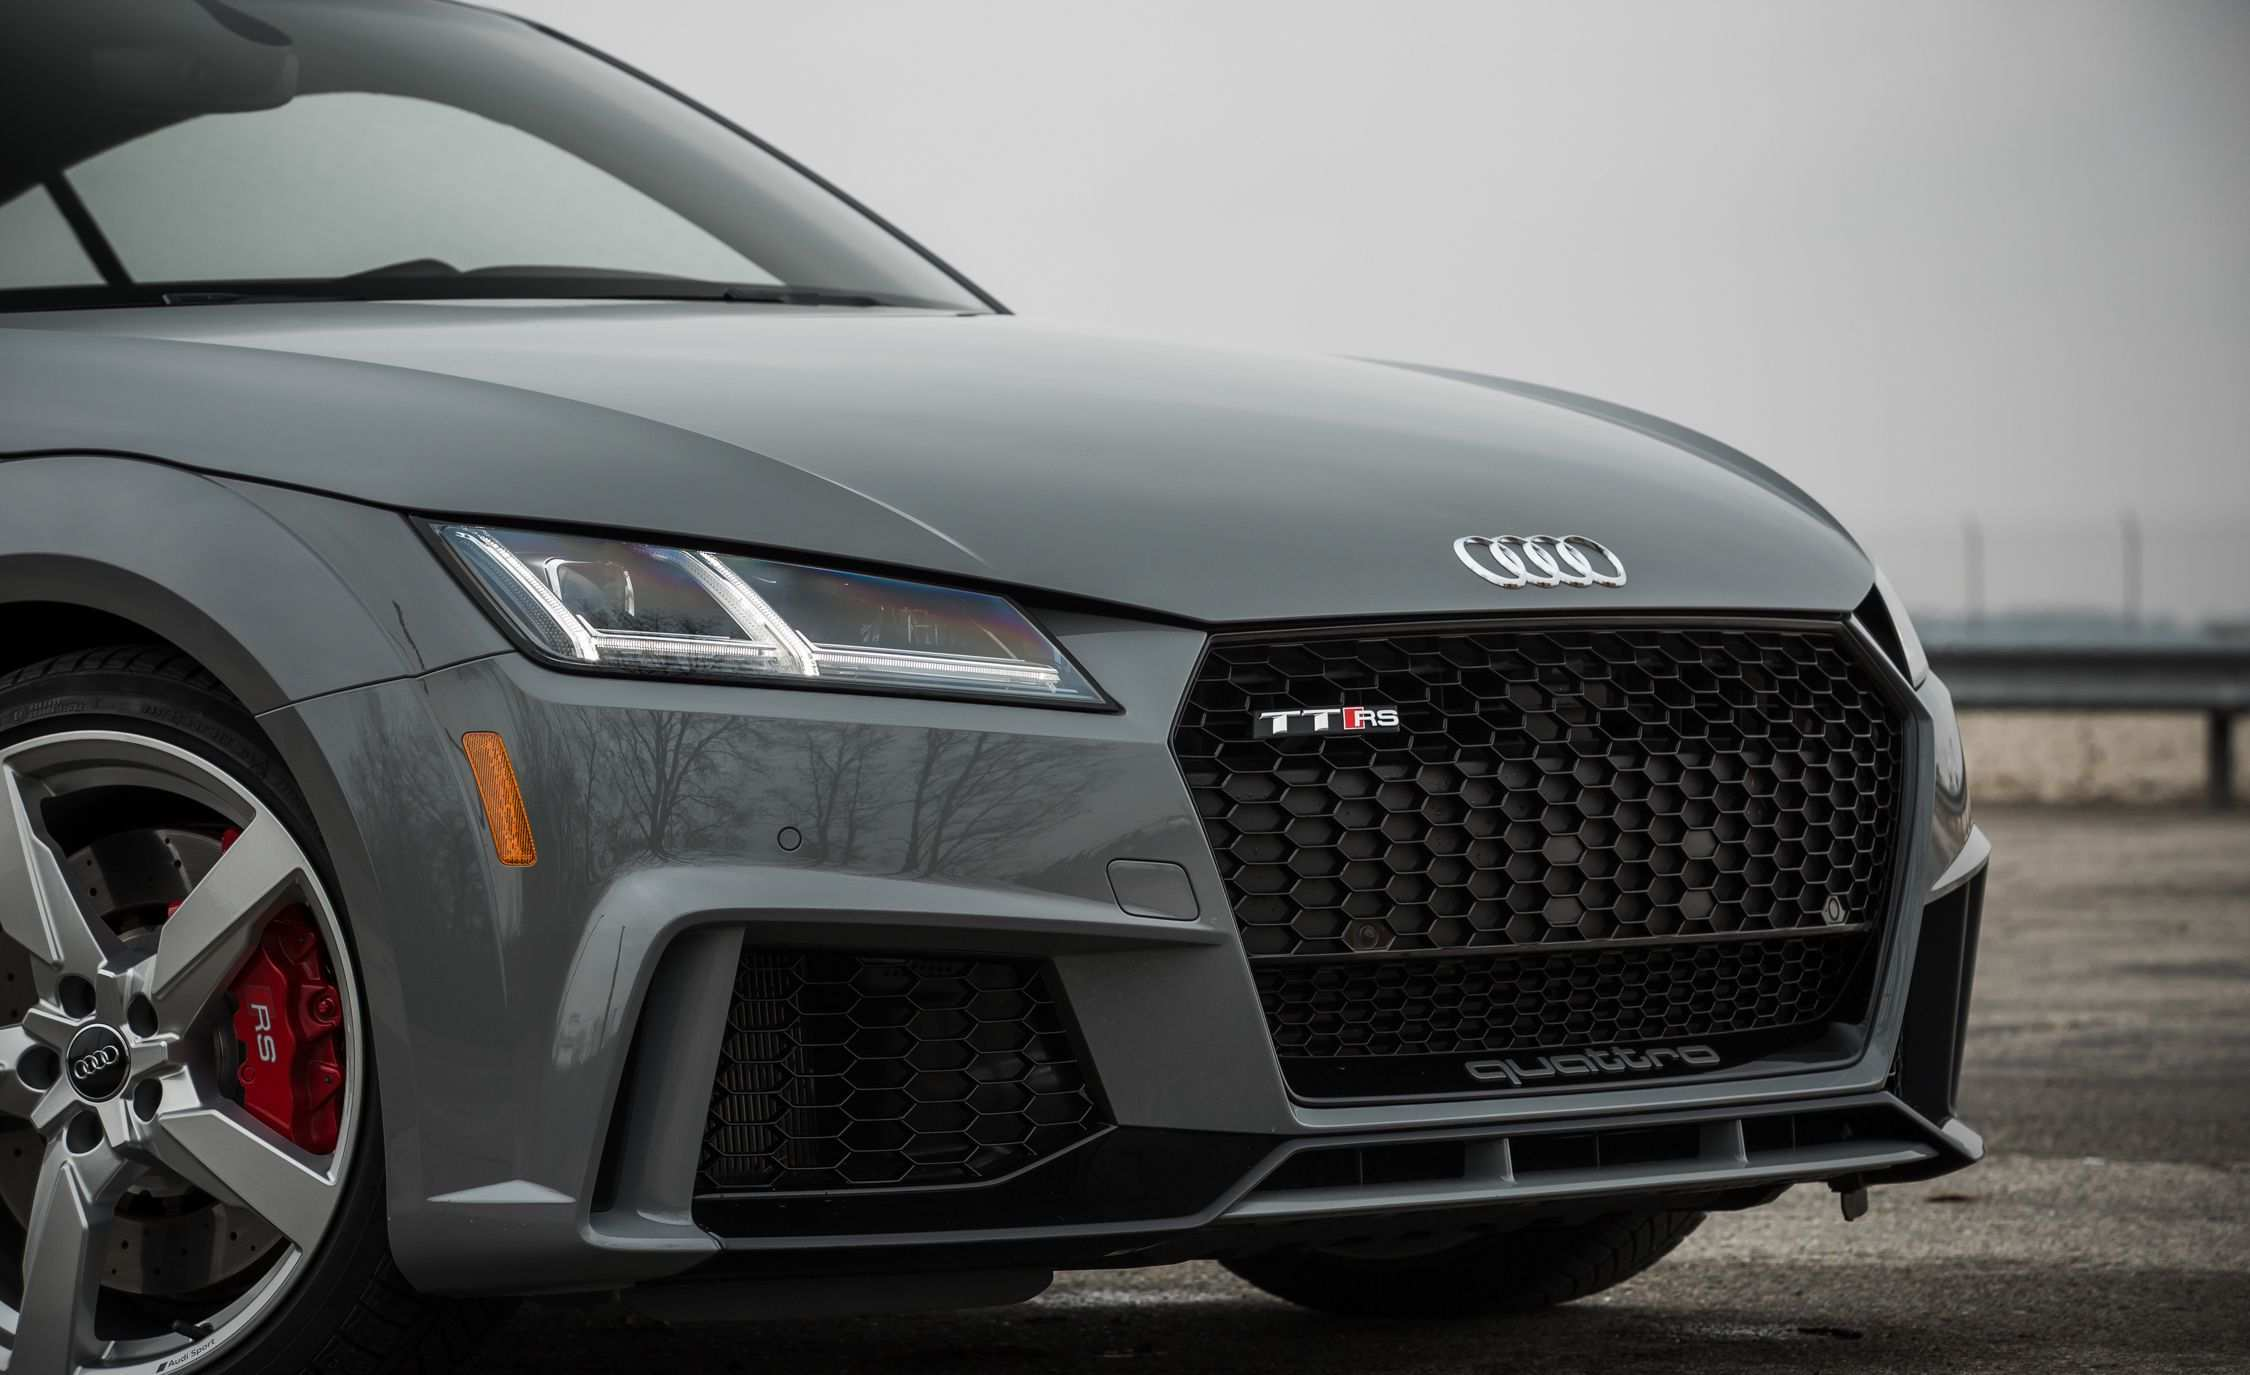 19 Concept of New Audi Tt Rs Plus 2019 Price And Review Style by New Audi Tt Rs Plus 2019 Price And Review